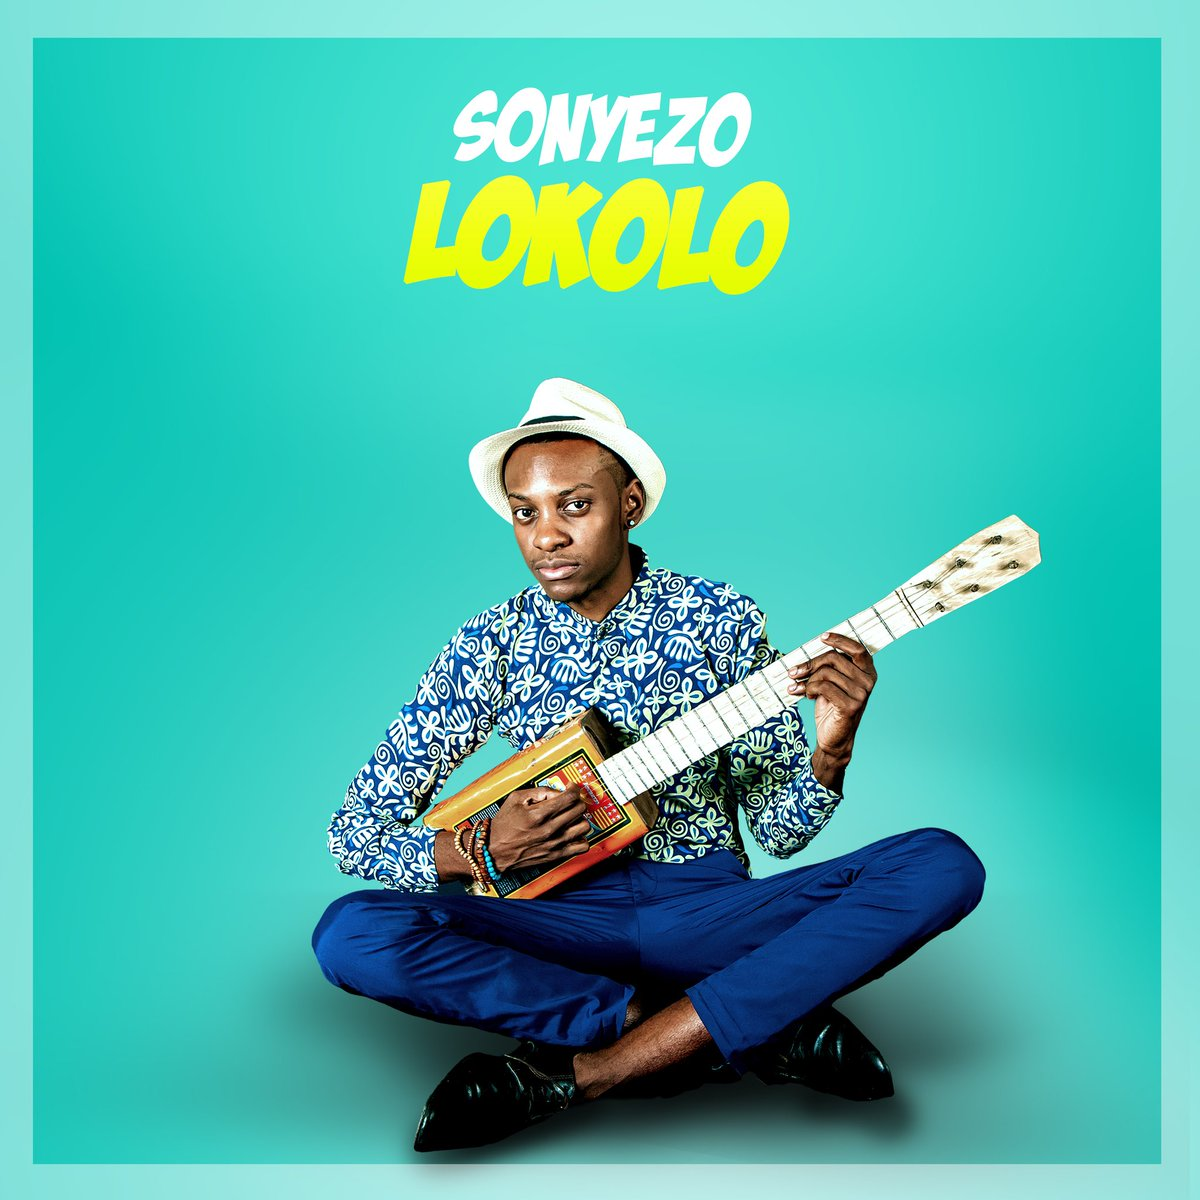 #TeamSonyezo We have another one!!! RT for your boy! #LOKOLO #JUNE4 https://t.co/4AEqJNuhXU